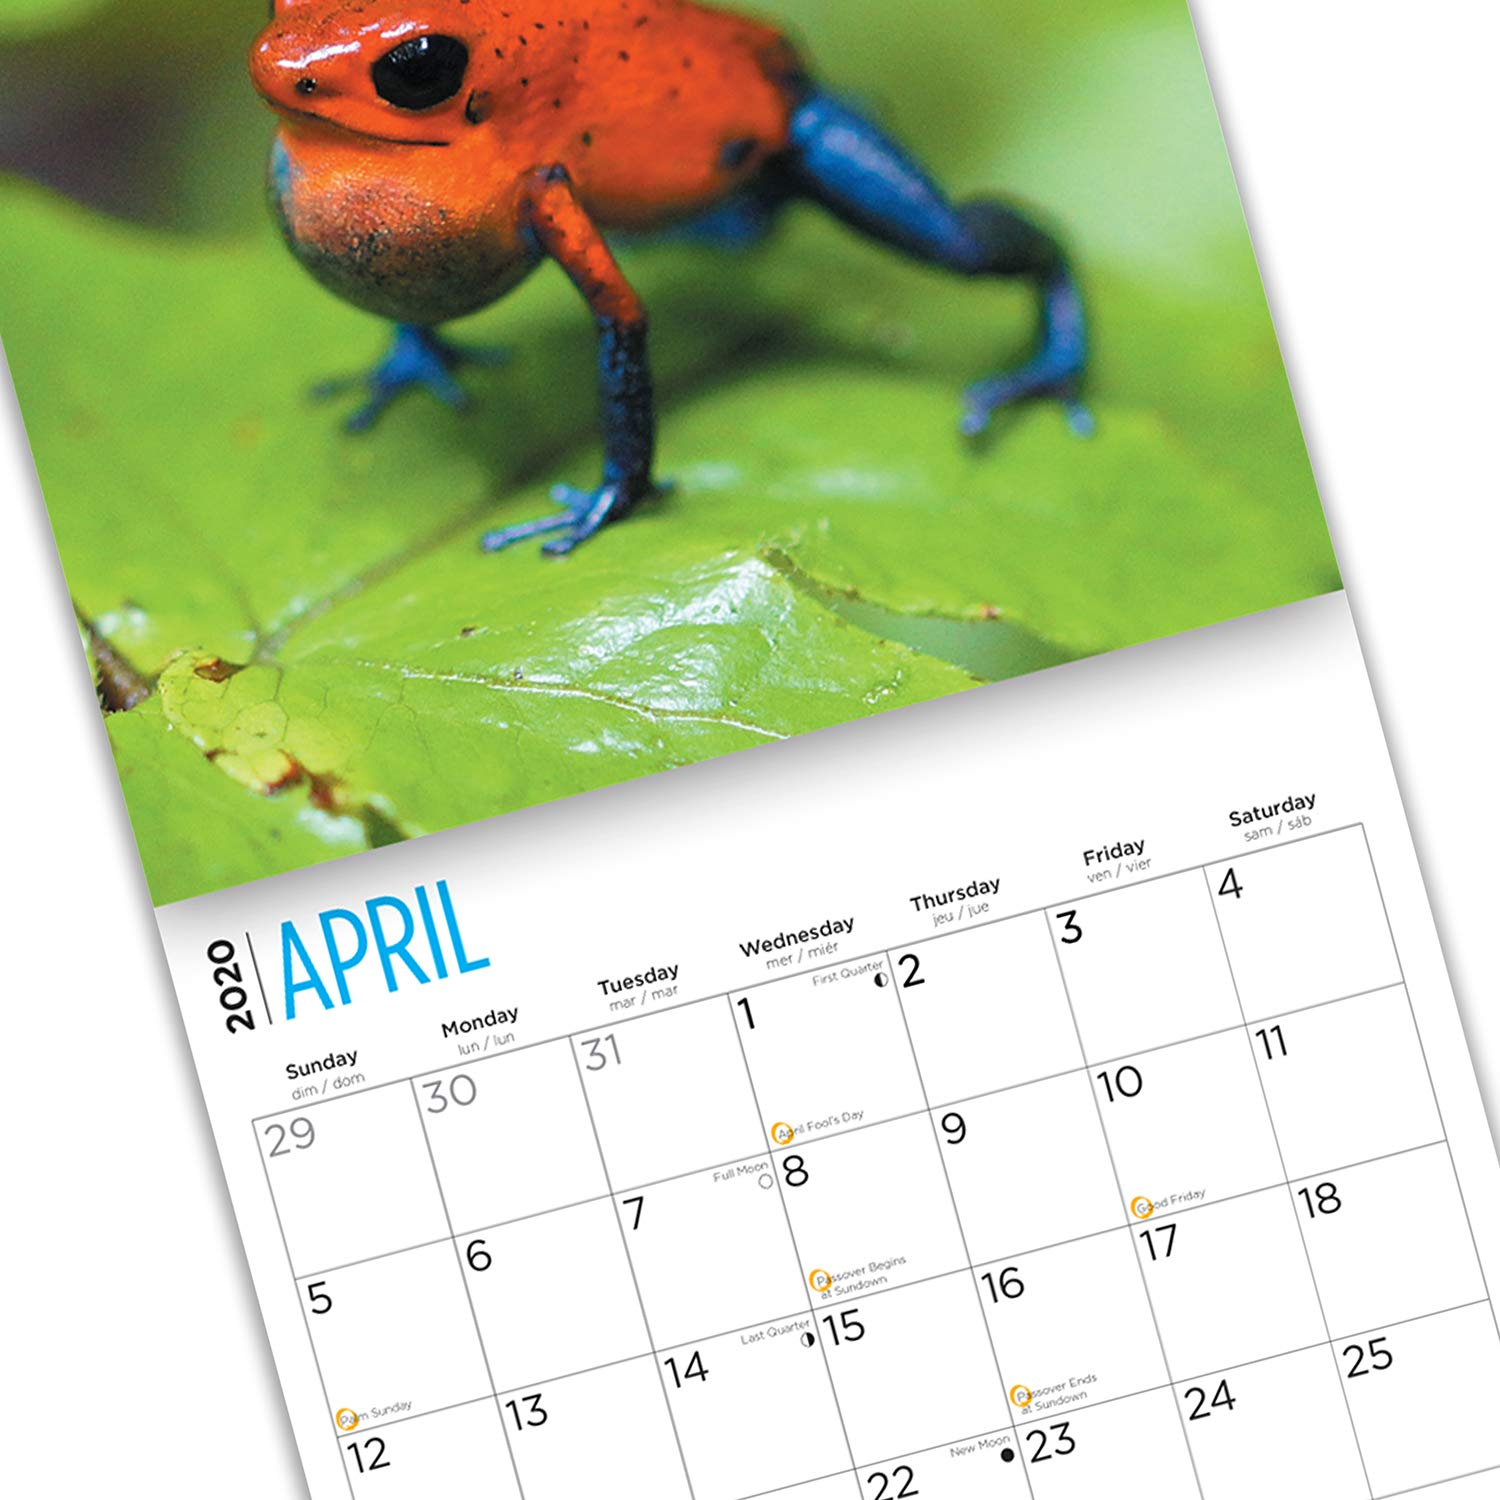 2020 Frog Wall Calendars by Bright Day Calendars 16 Month Wall Calendar 12 x 12 Inches Reptiles and Bugs Collection